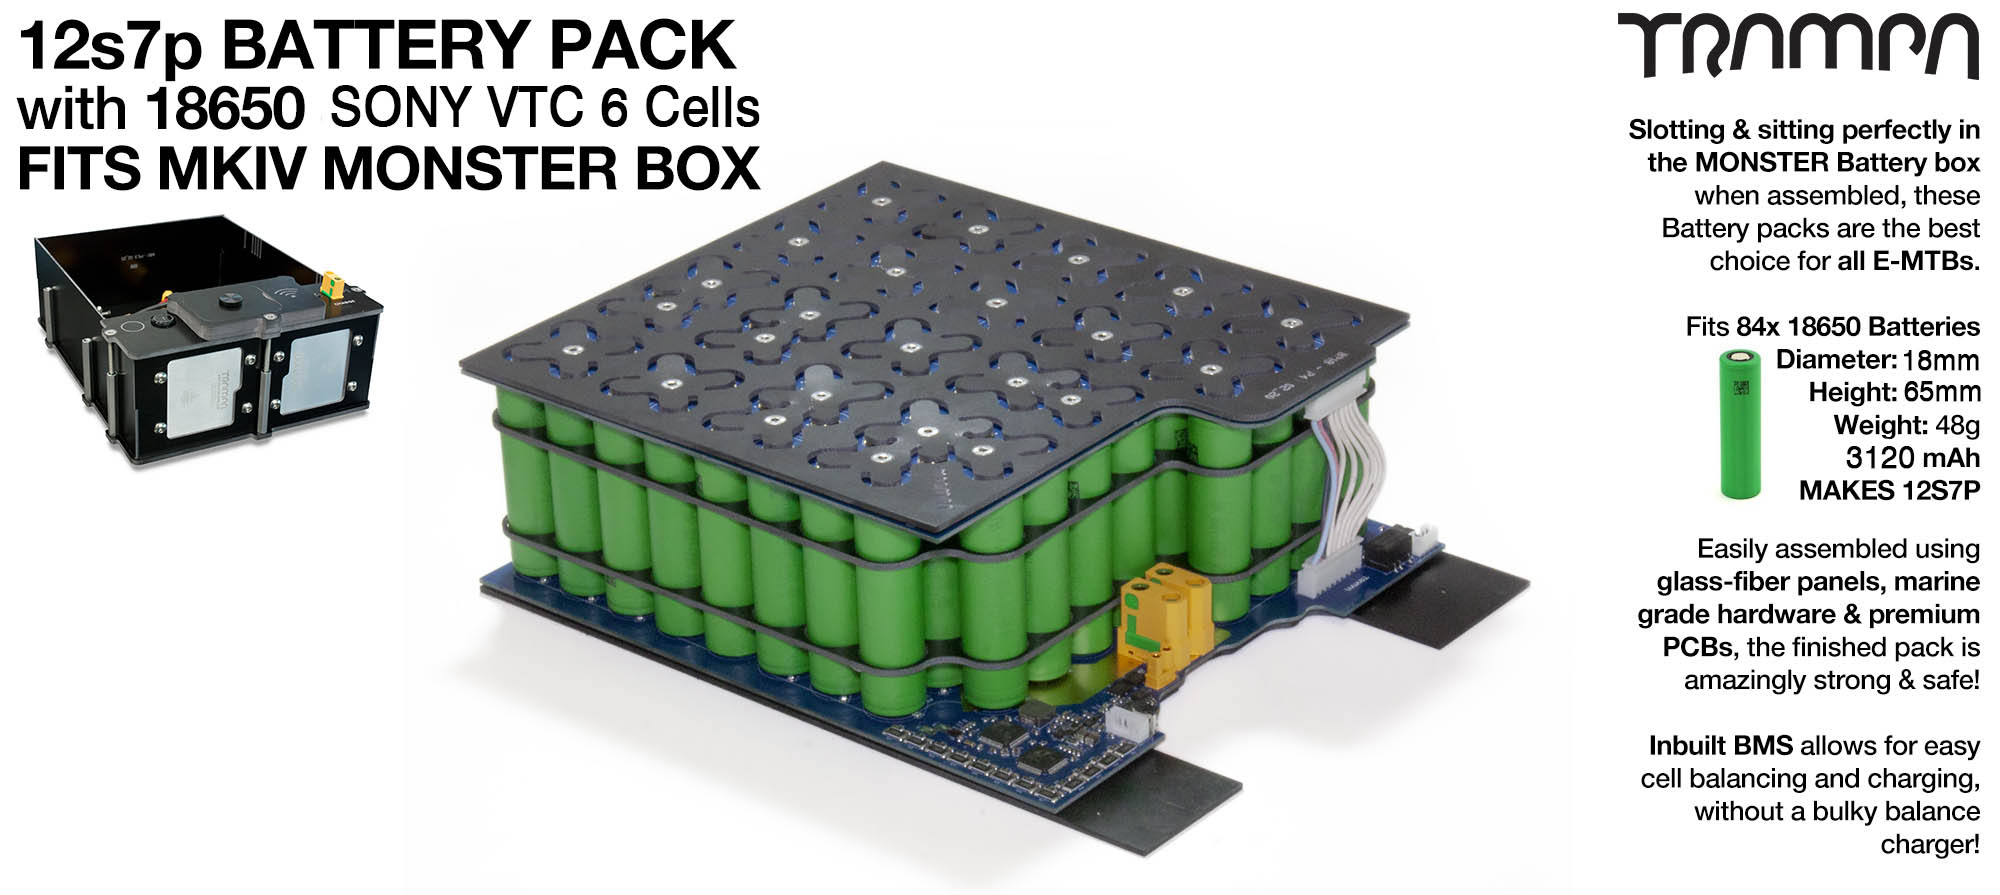 18650 PCB Pack with integrated BMS & 84 x 18650 cells to give 21A of Range - Requires MKIV Classic MONSTER box onwards to fit - UK CUSTOMERS ONLY